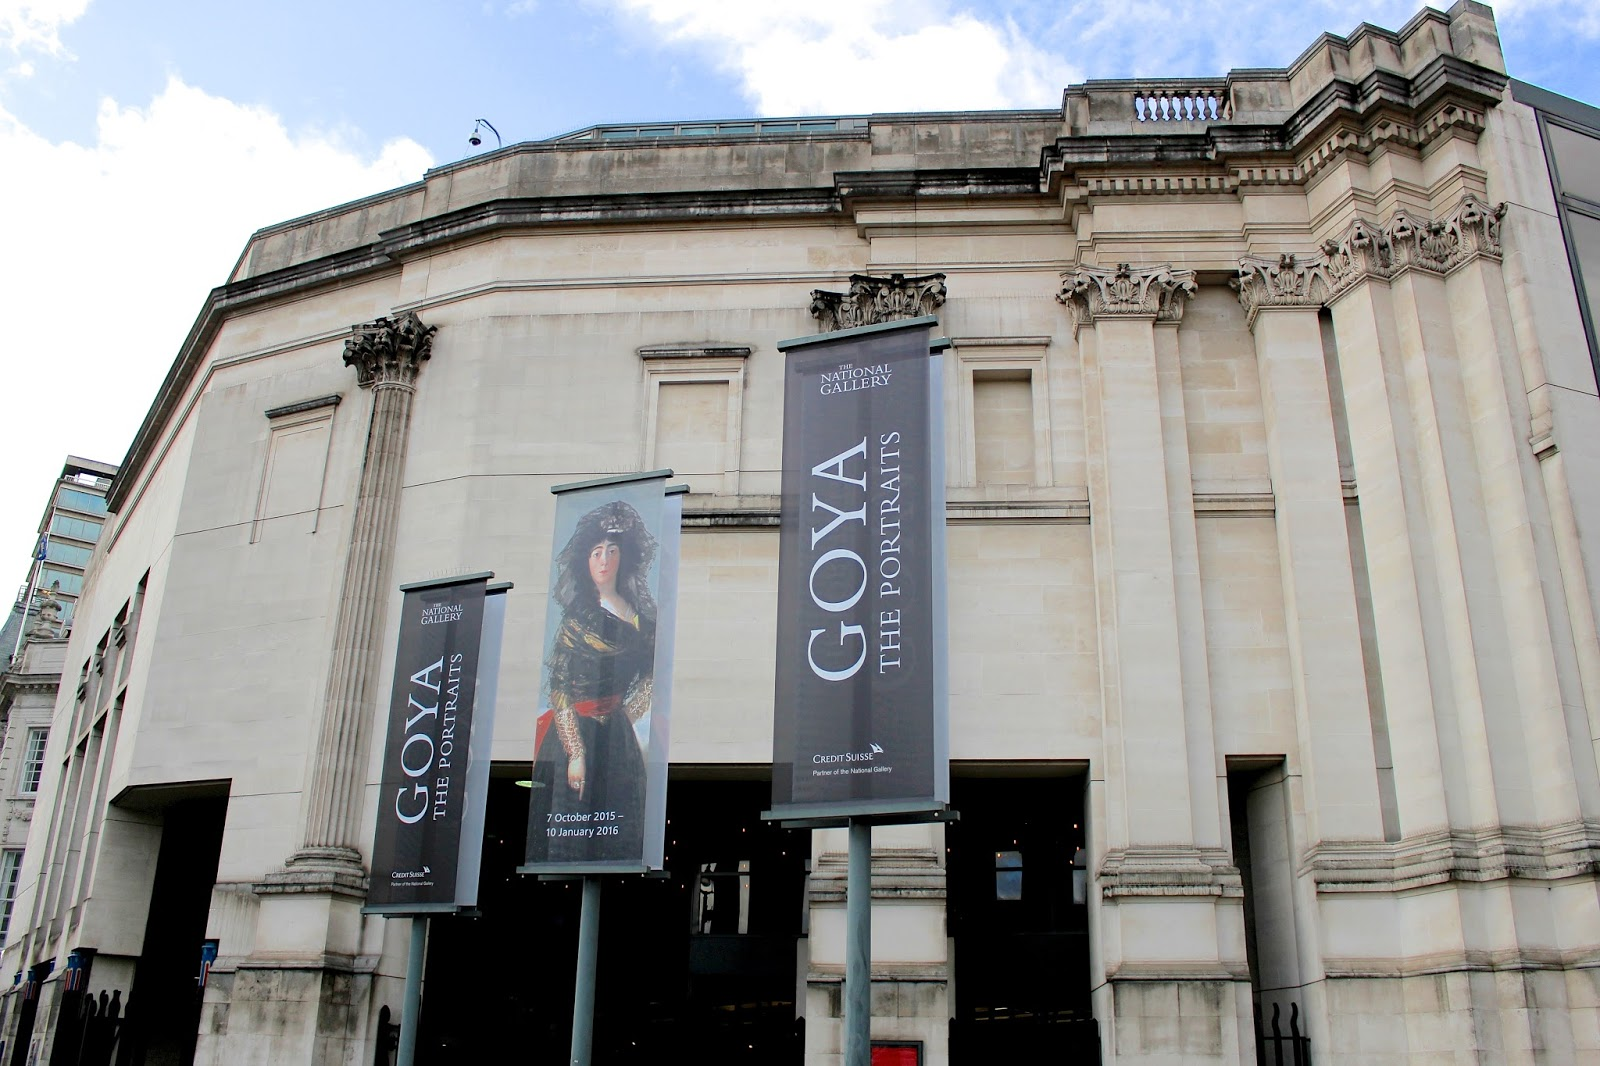 Goya The Portraits National Gallery